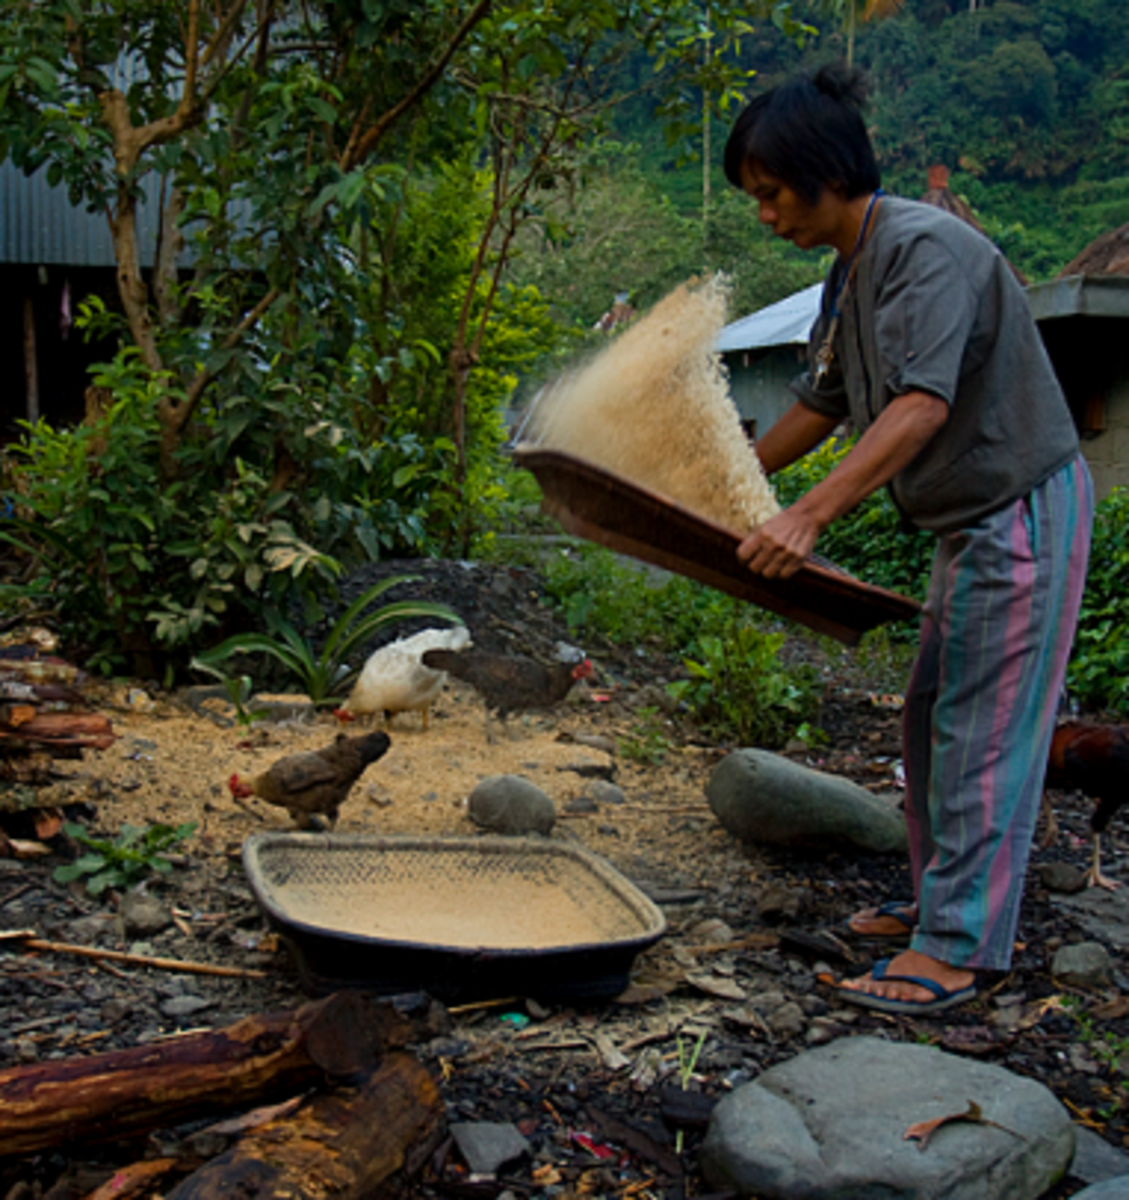 Winnowing the Rice Hull from Grain (Image Credit: AkosiSuperEdwinK from pinoyphotography.org)